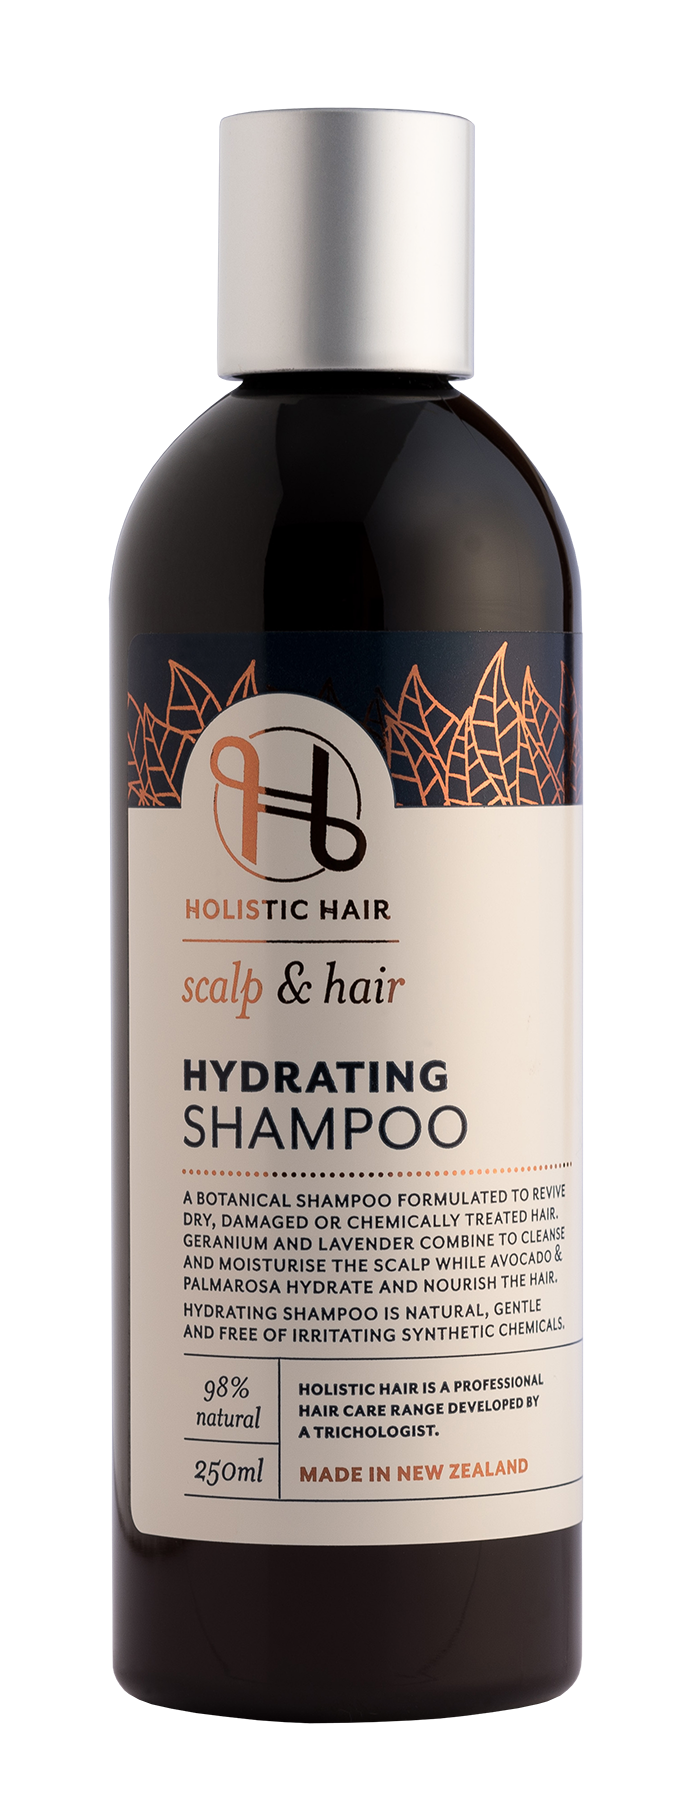 Holistic Hair Hydrating Shampoo 250ml